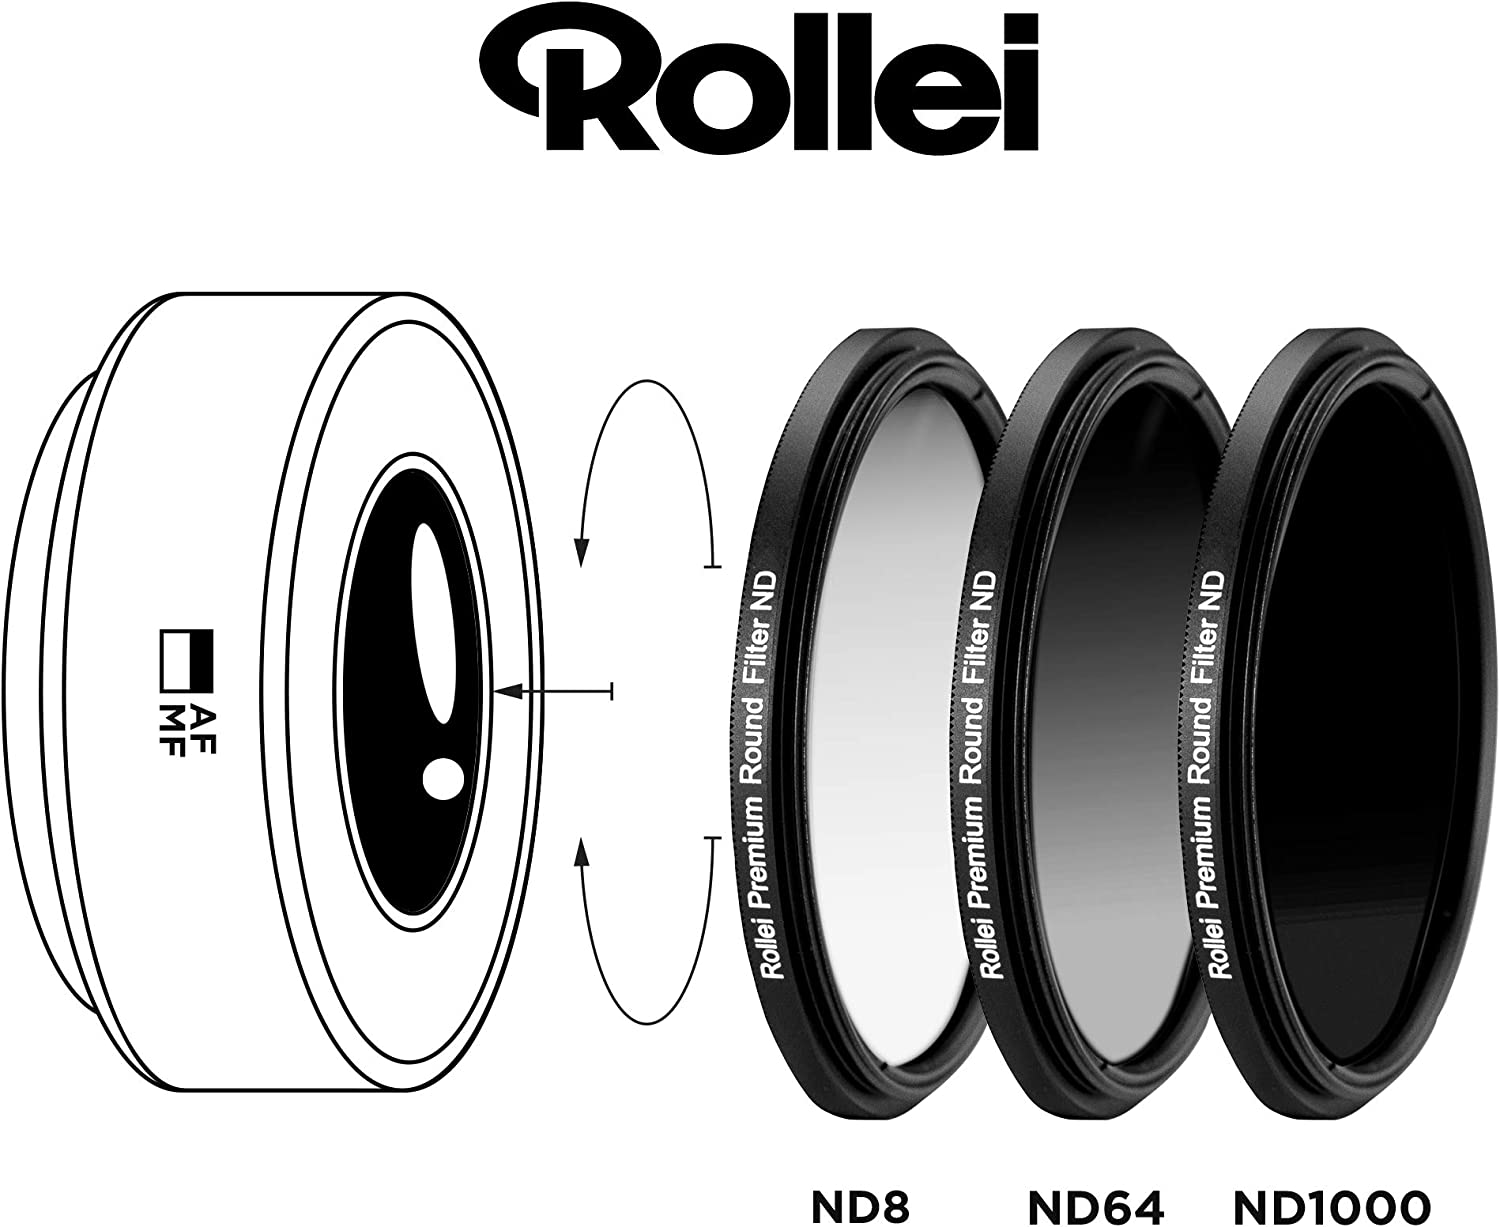 1x ND8 ND64 and ND1000 filters each made of Gorilla Glass with aluminium ring and protective cap. Rollei Premium Round Filter Set consisting of